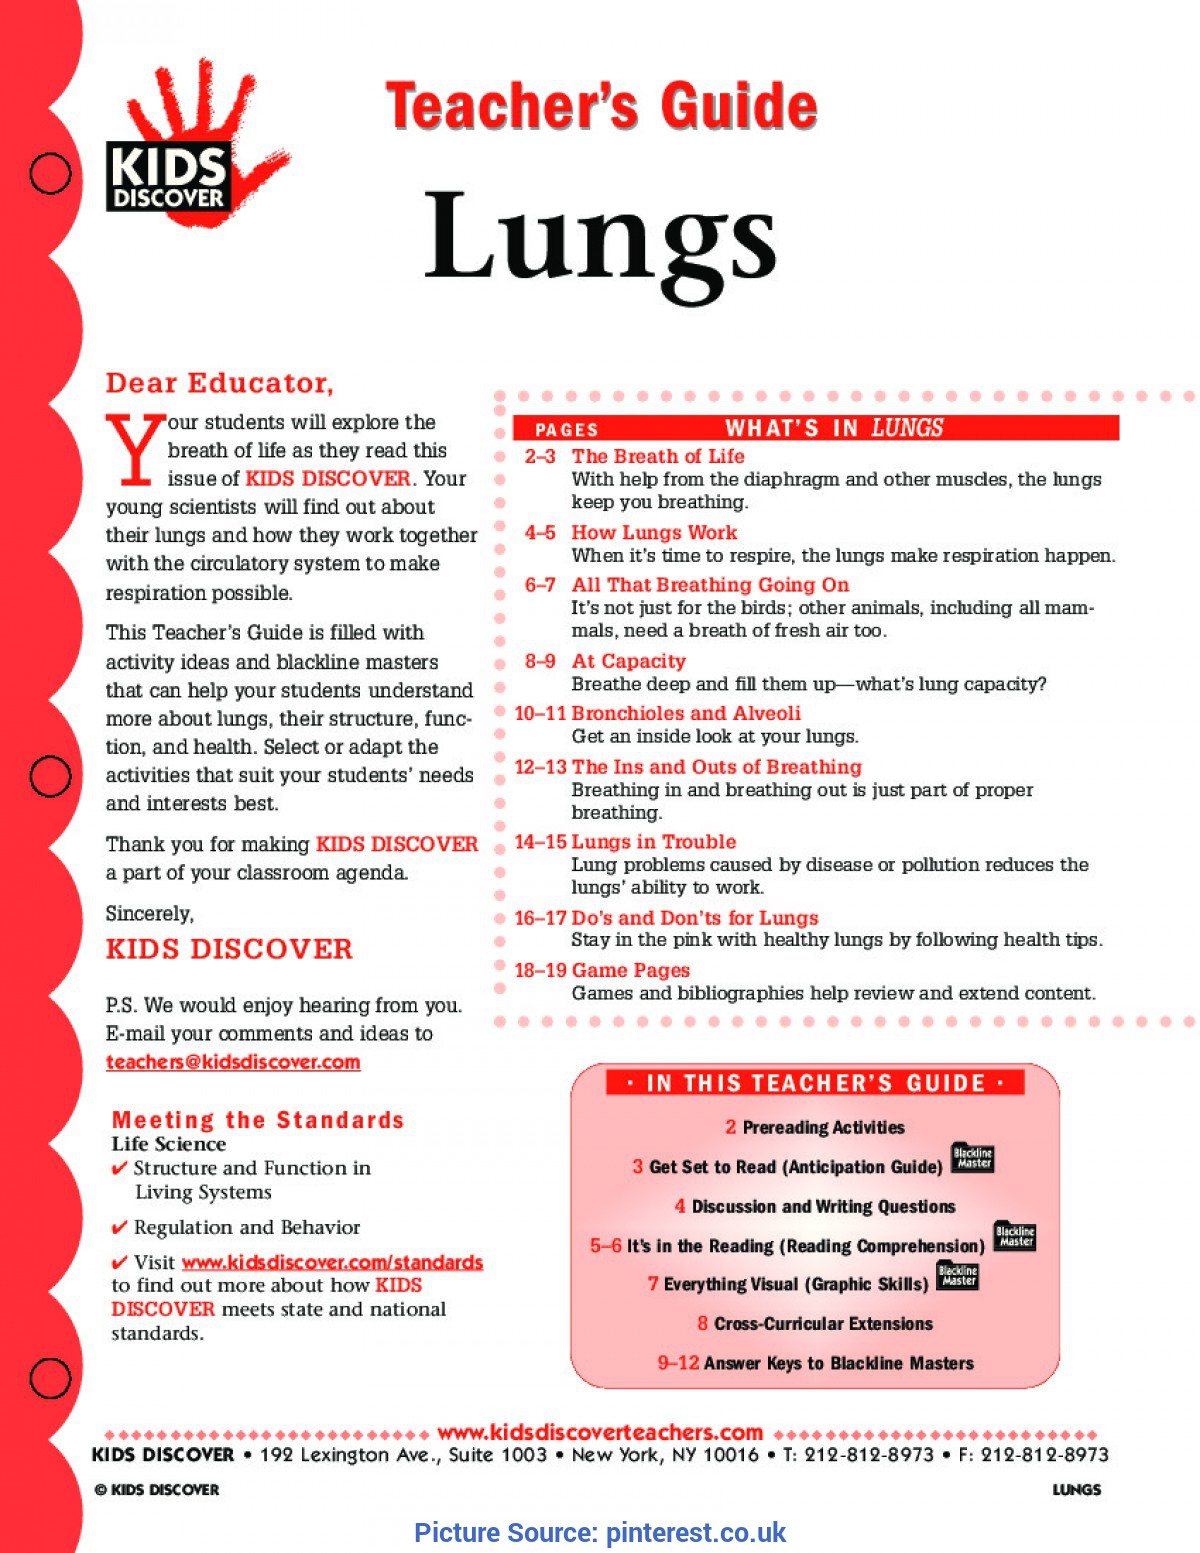 Useful 5Th Grade Life Science Lesson Plans This Free Lesson Plan For Kids Discover Lungs Will Help You Teac